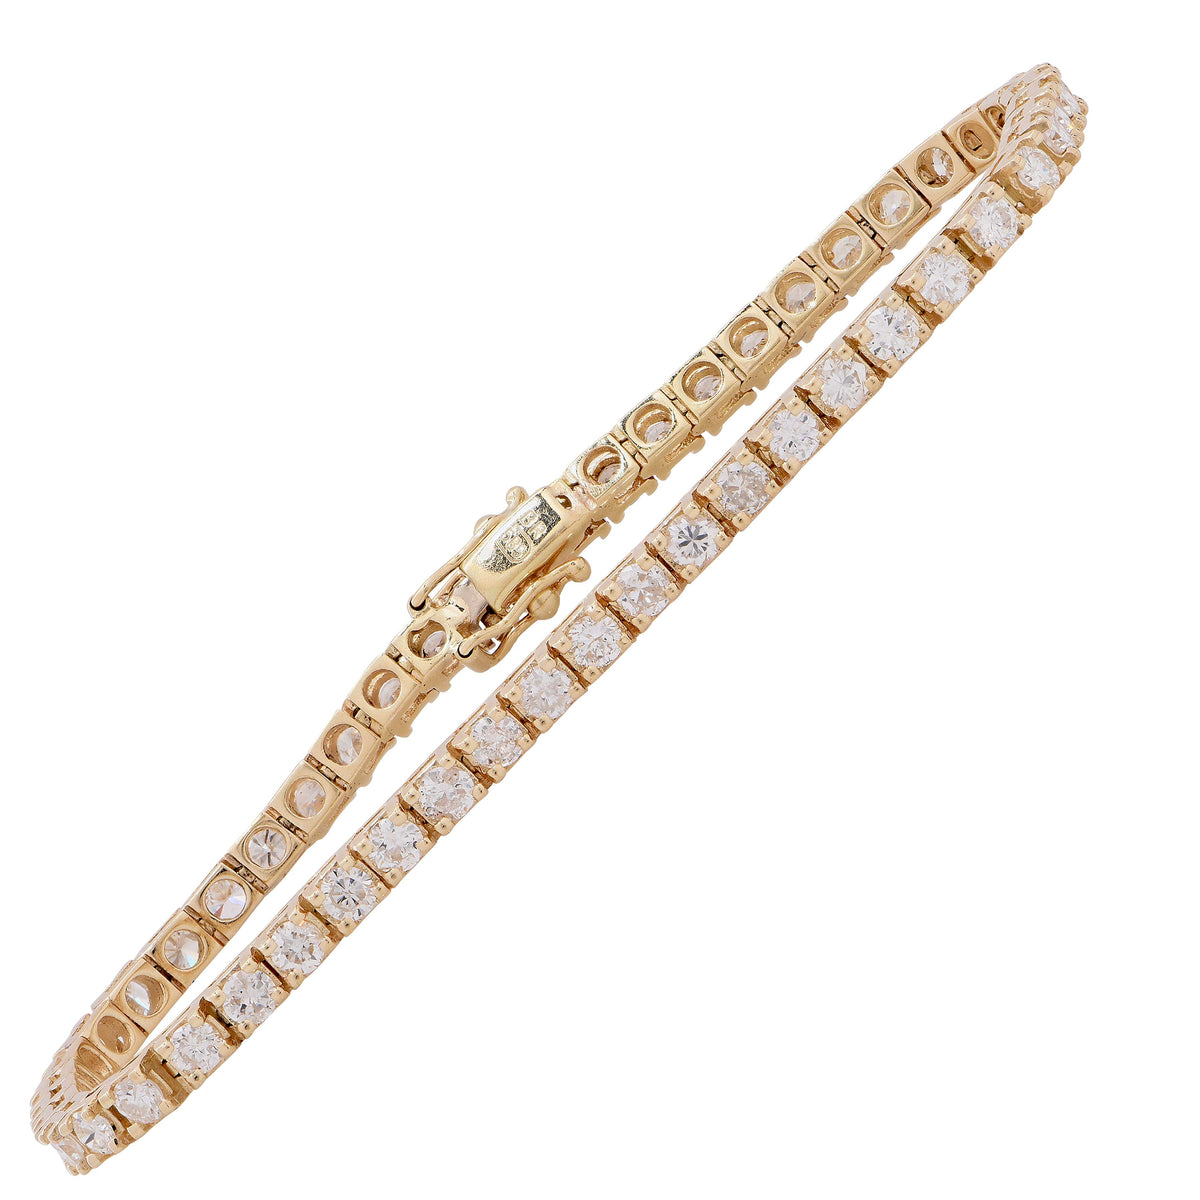 5 Carat Diamond Yellow Gold Prong Set Tennis Bracelet